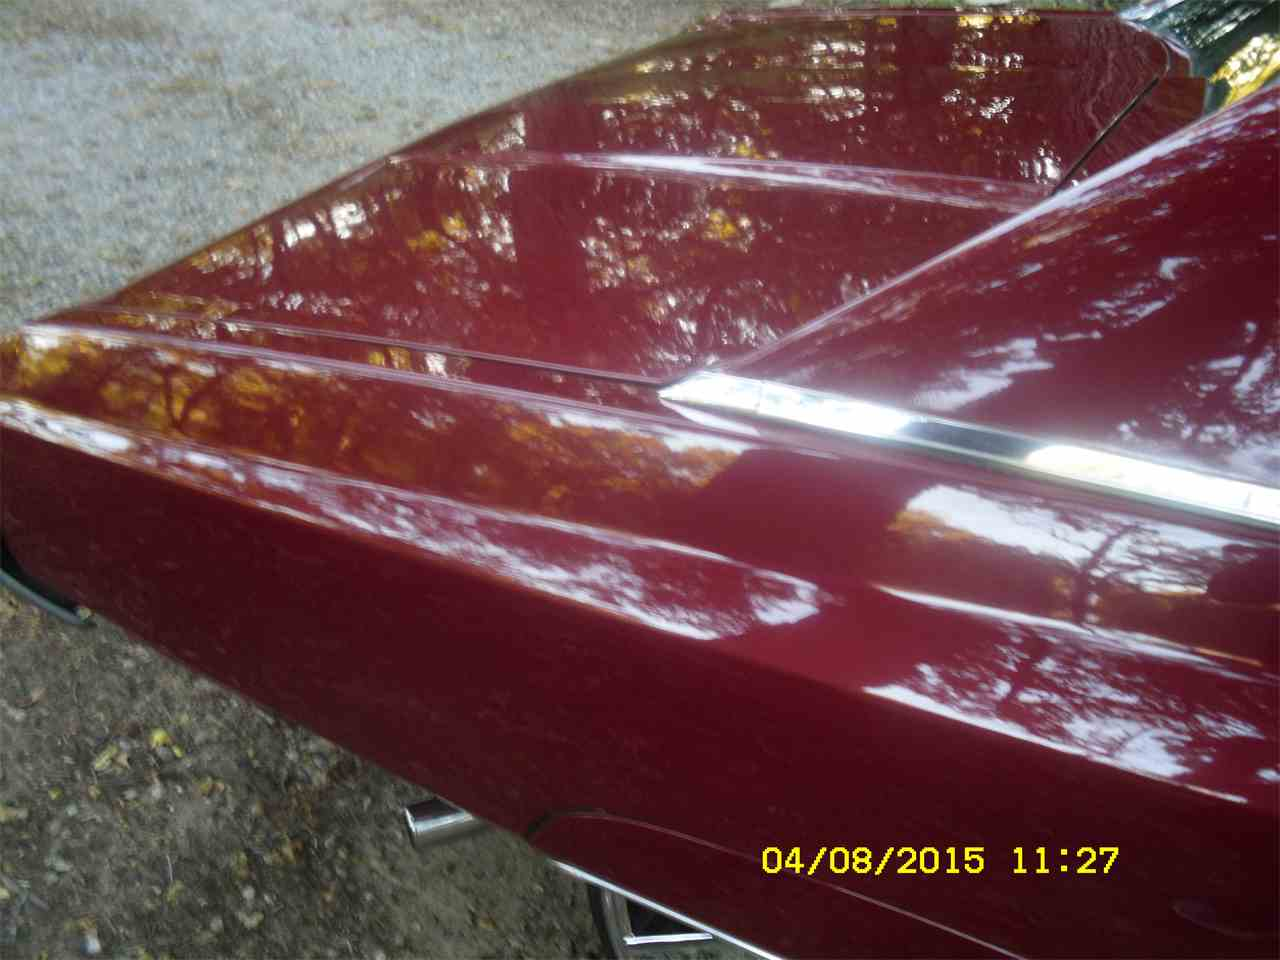 Large Picture of '73 Impala located in Macon Georgia Offered by a Private Seller - JIZ7